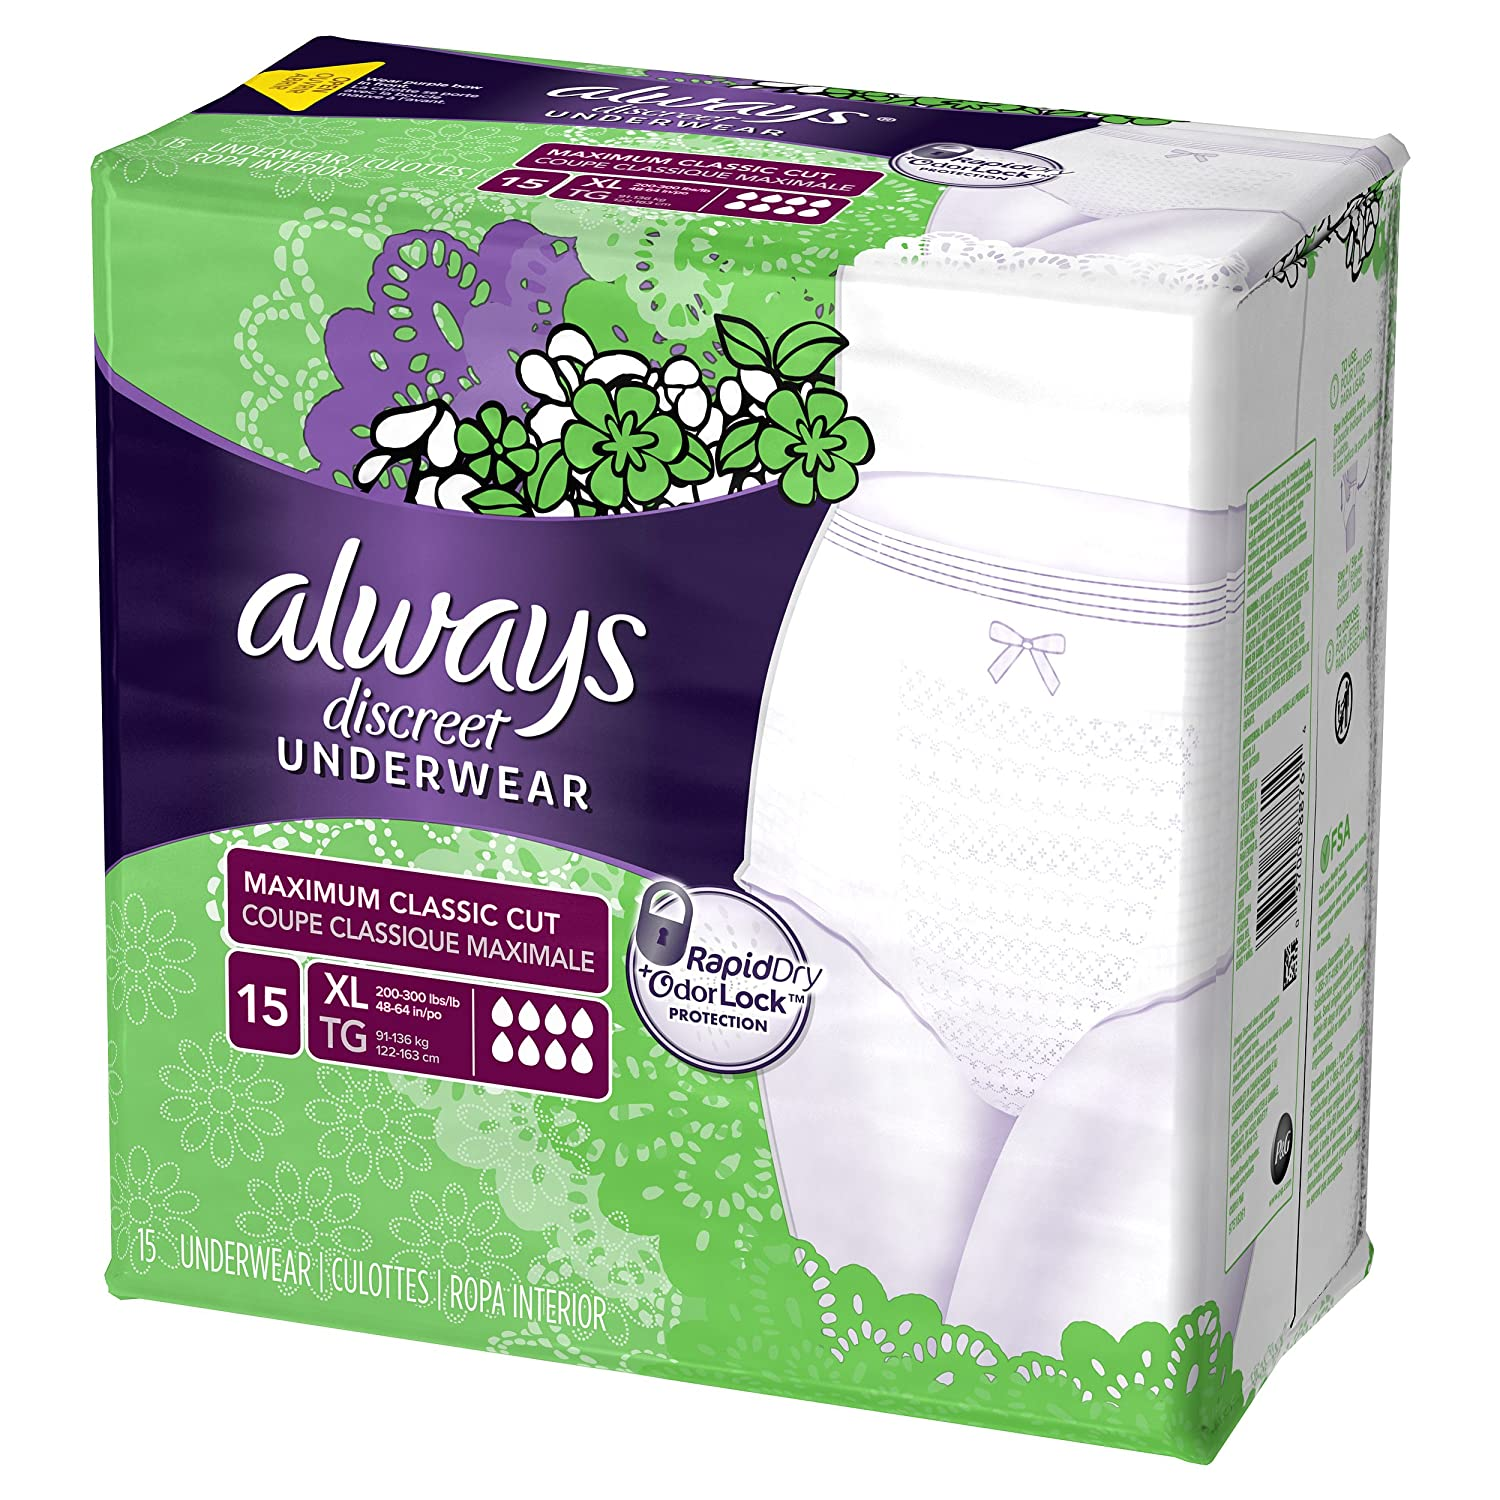 Amazon.com: Always Discreet, Incontinence Underwear for Women, Maximum Classic Cut, Extra-Large, 15 Count: Health & Personal Care